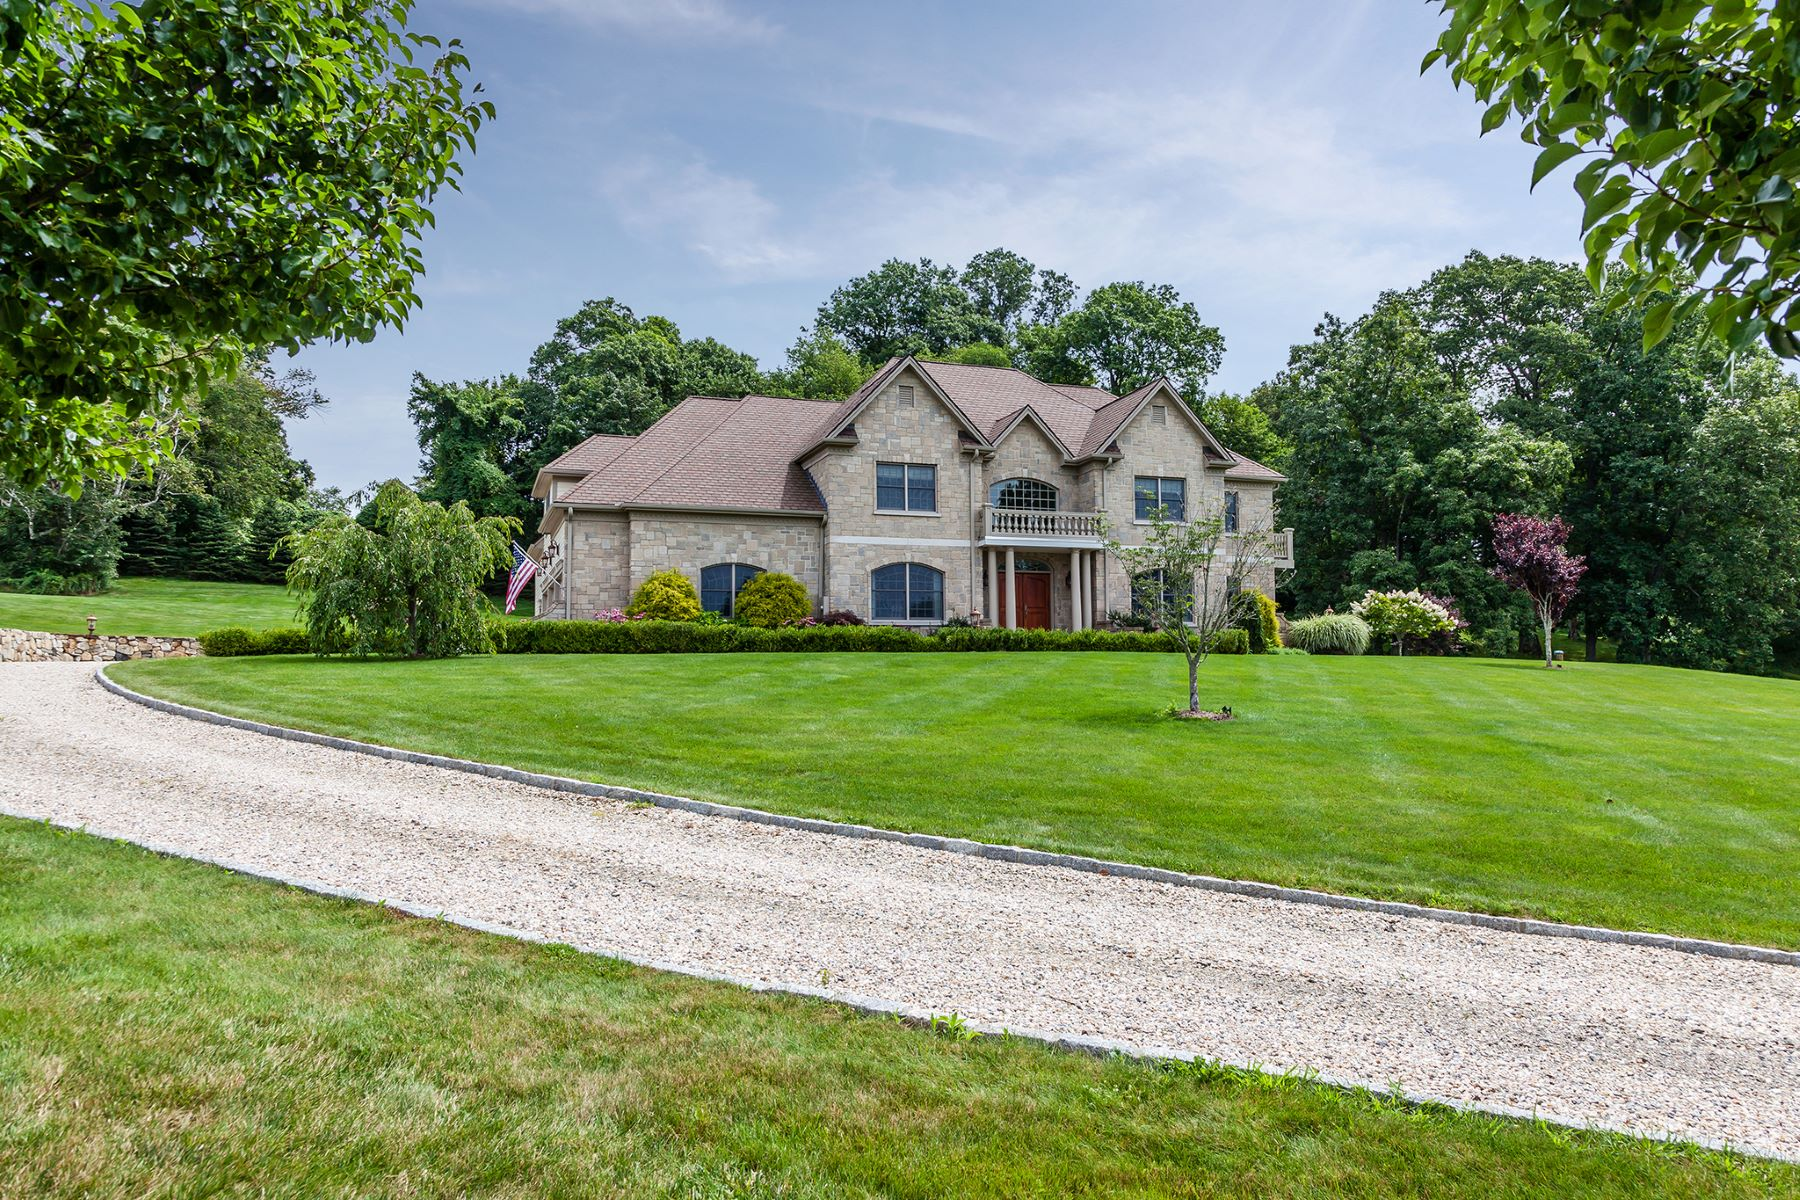 Eensgezinswoning voor Verkoop een t Luxurious Residence on 6 Acres 22 Carriage Lane Litchfield, Connecticut 06759 Verenigde Staten